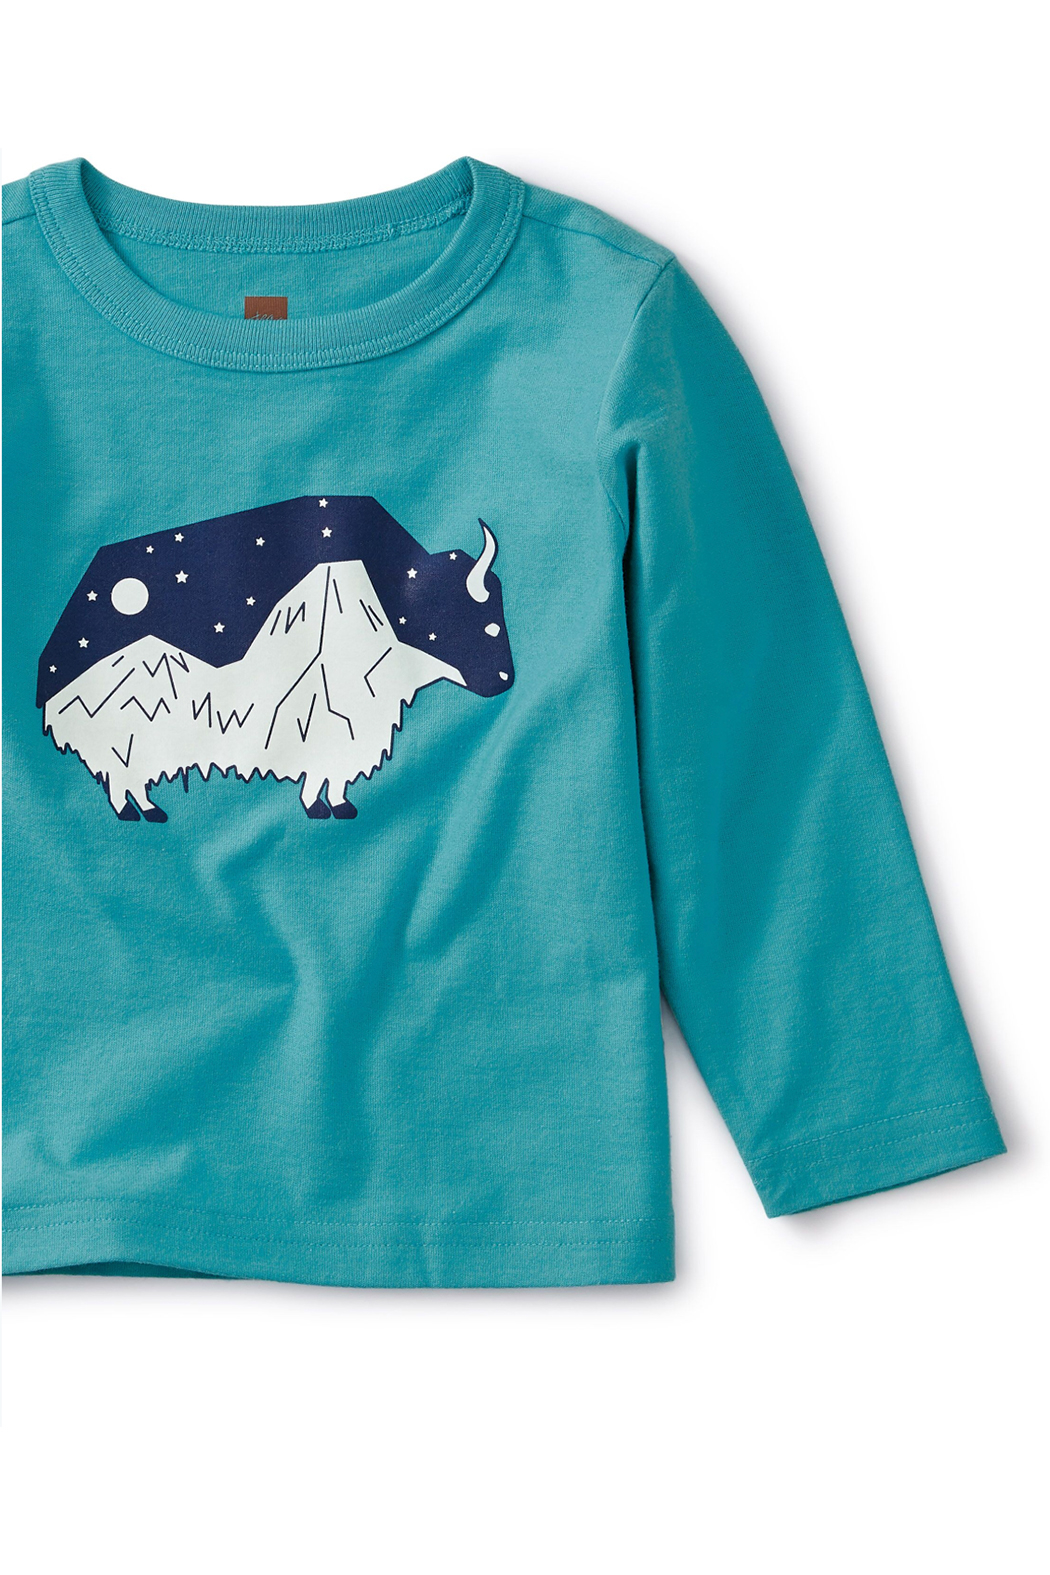 Tea Collection Glow in the Dark Baby Yak Tee - Front Full Image